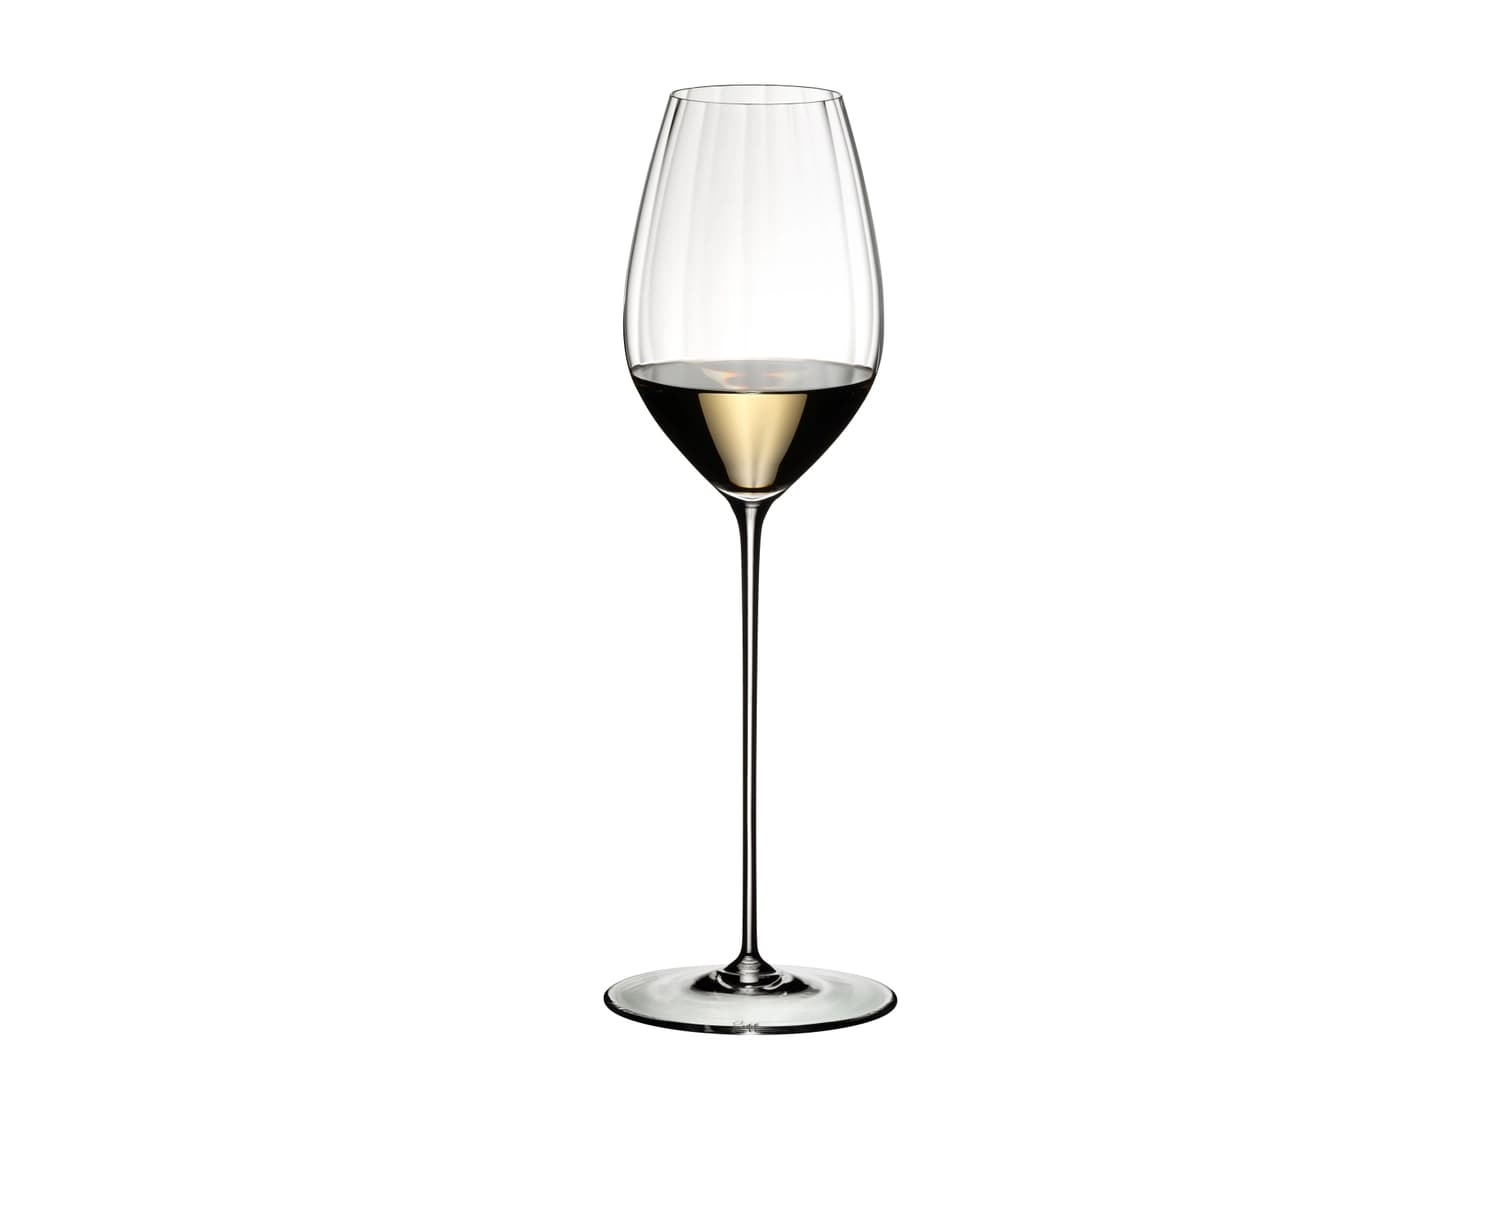 Pahar pentru vin, din cristal High Performance Riesling Clear, 623 ml, Riedel somproduct.ro